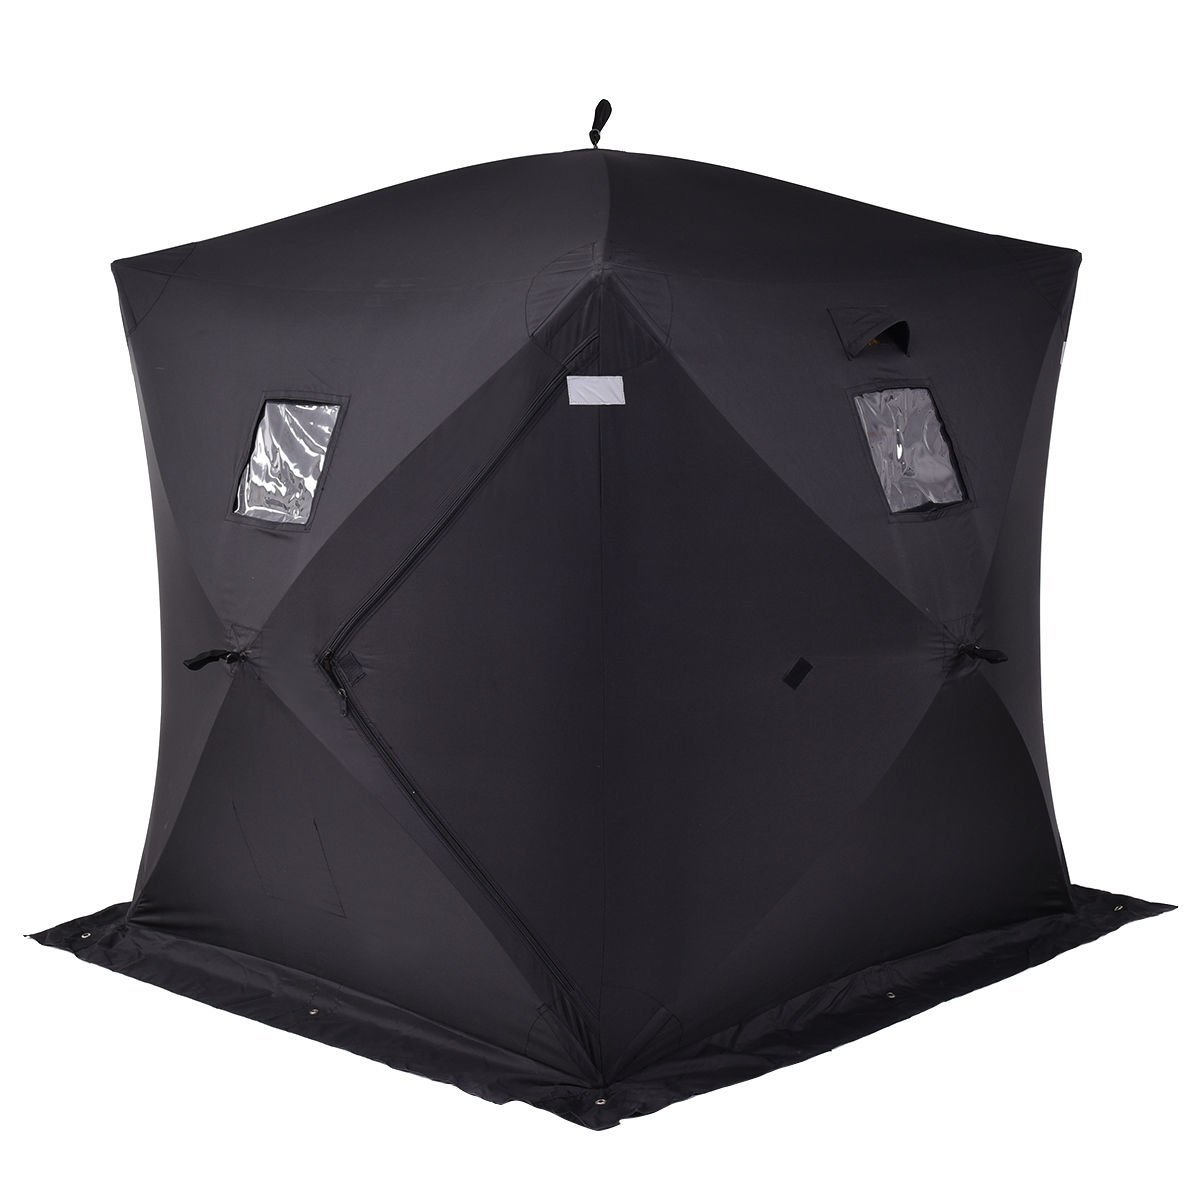 Cheap Portable Ice Fishing Shelter Find Portable Ice